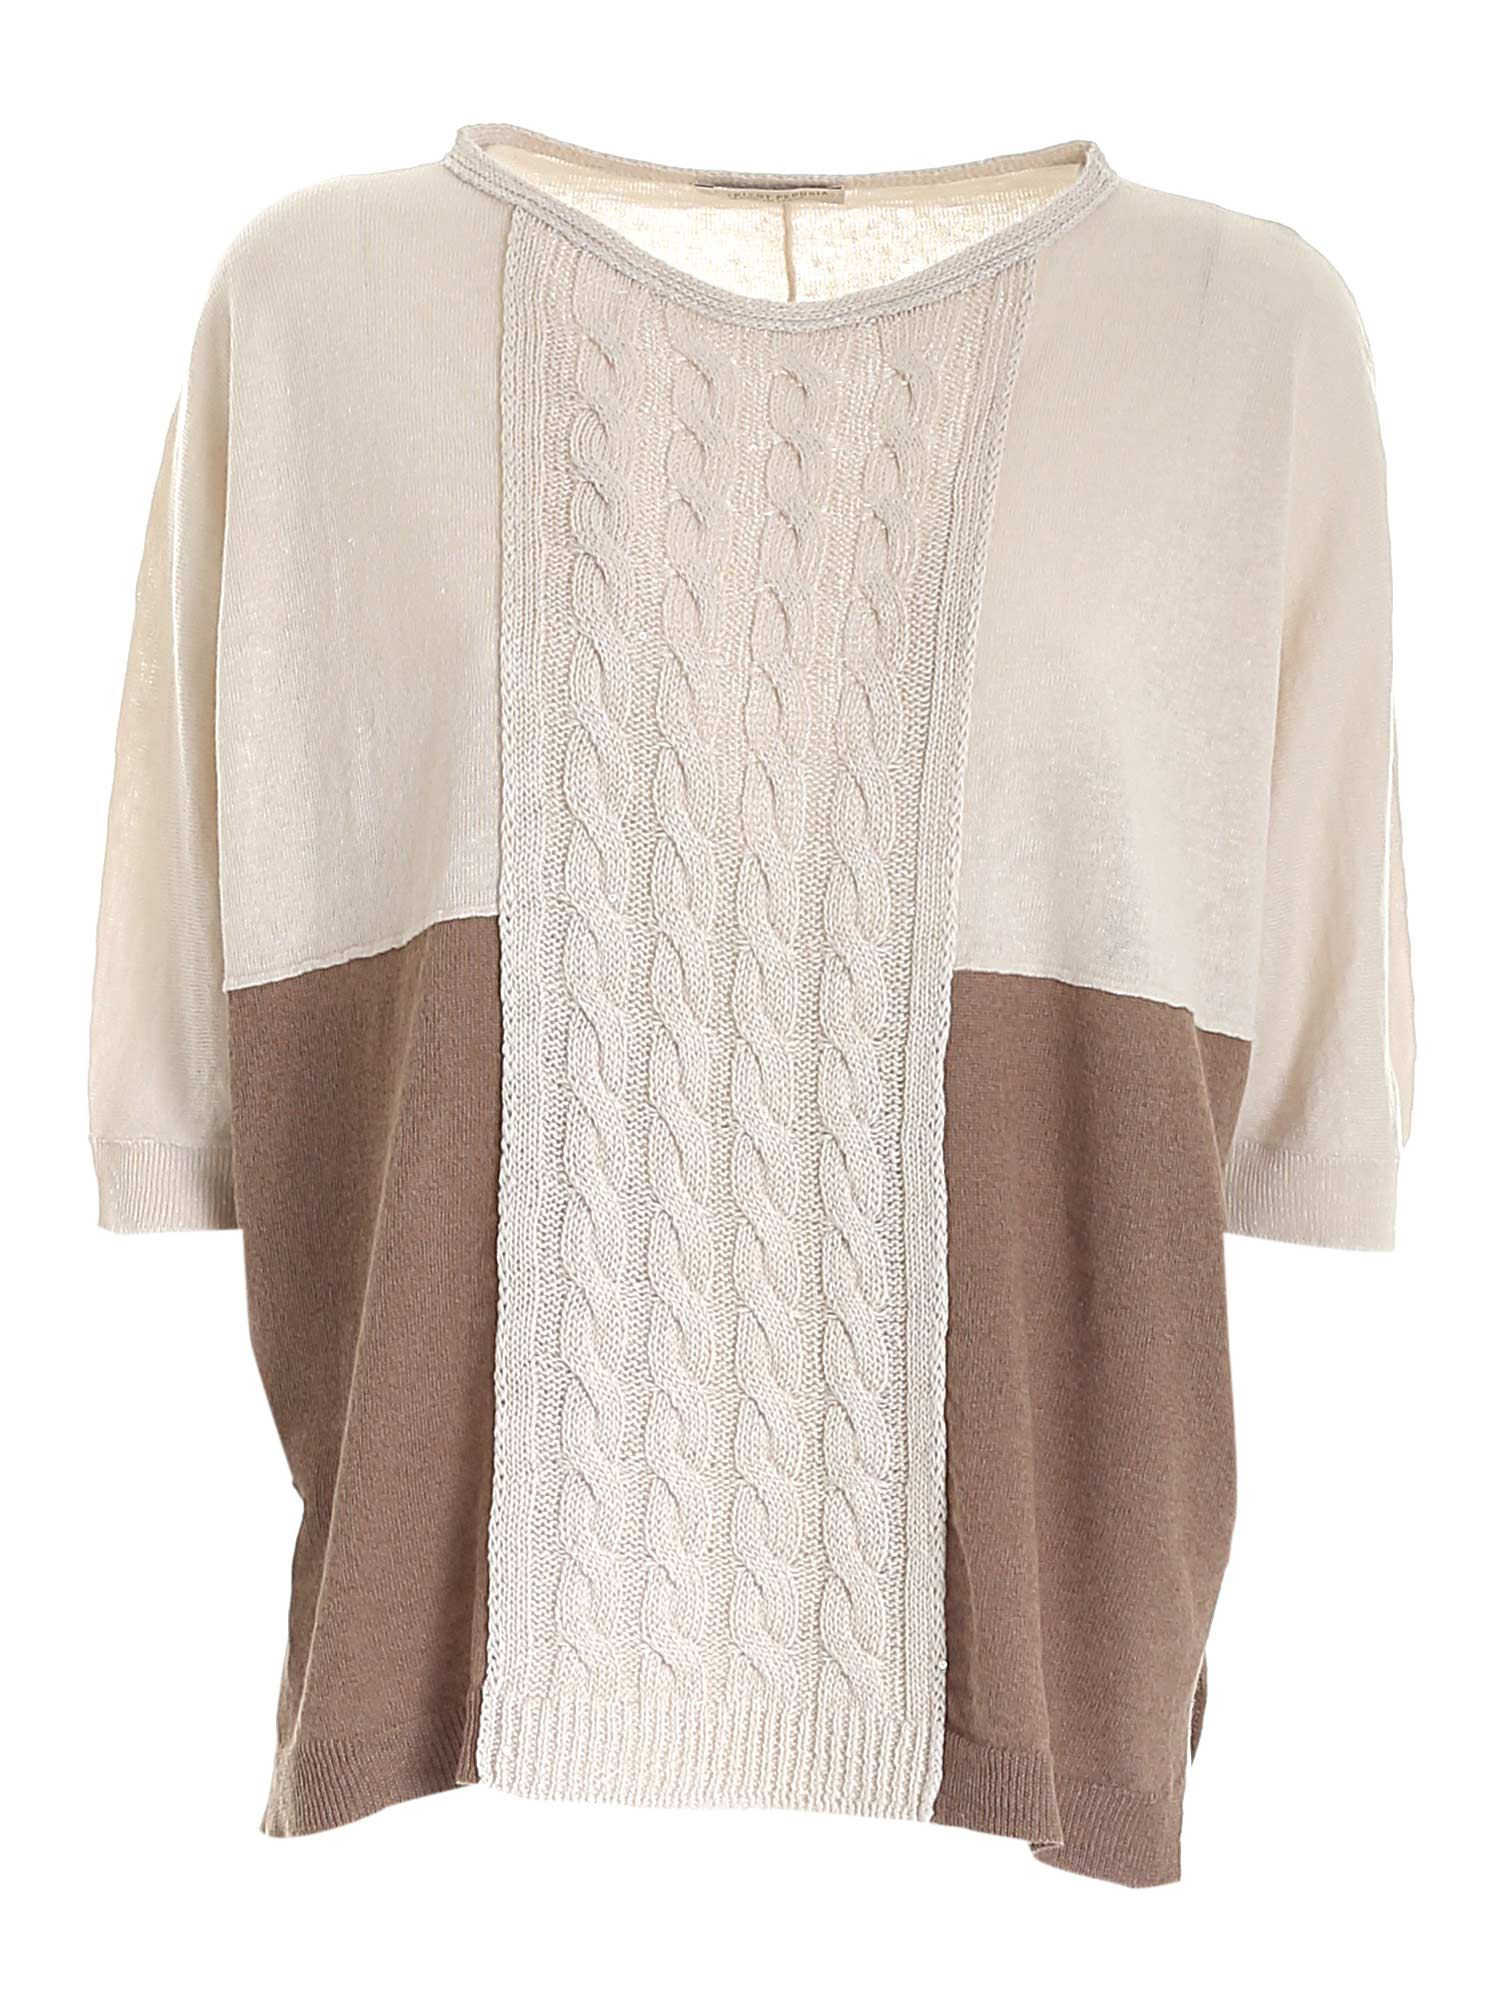 Le Tricot Perugia Cottons BOXY SWEATER IN BEIGE AND BROWN